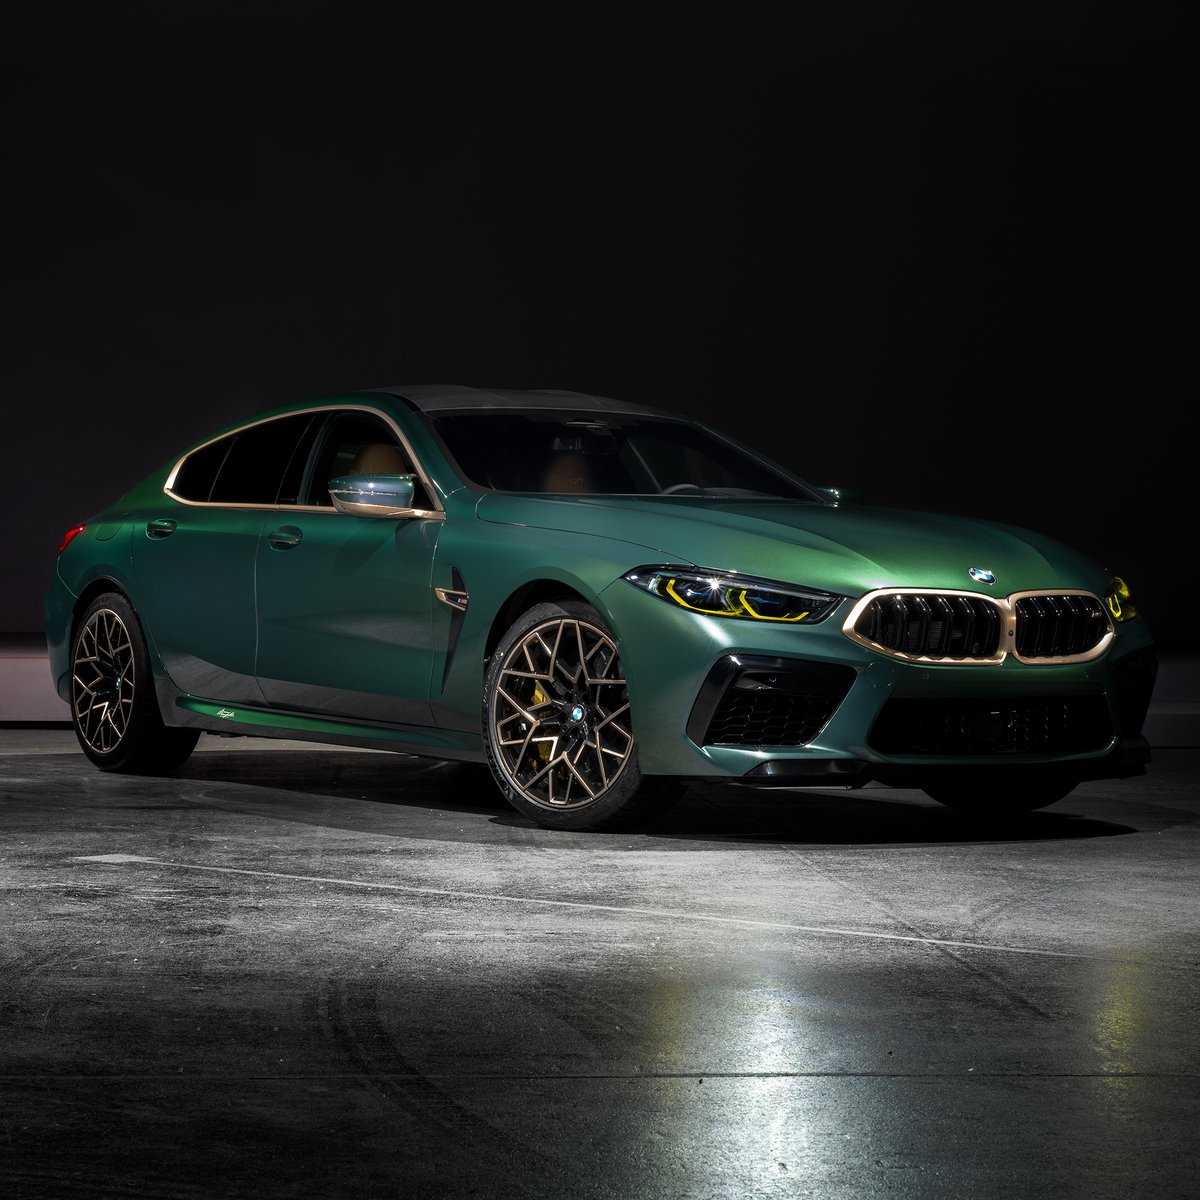 Introducing The 8-OF-8. With only 8 existing, the new model is the height of exclusivity. The 8-OF-8 builds on the M8 Gran Coupé First Edition, adding unique interior and exterior Individual specification. #8OF8See more: http://bit.ly/2Q0H0Se